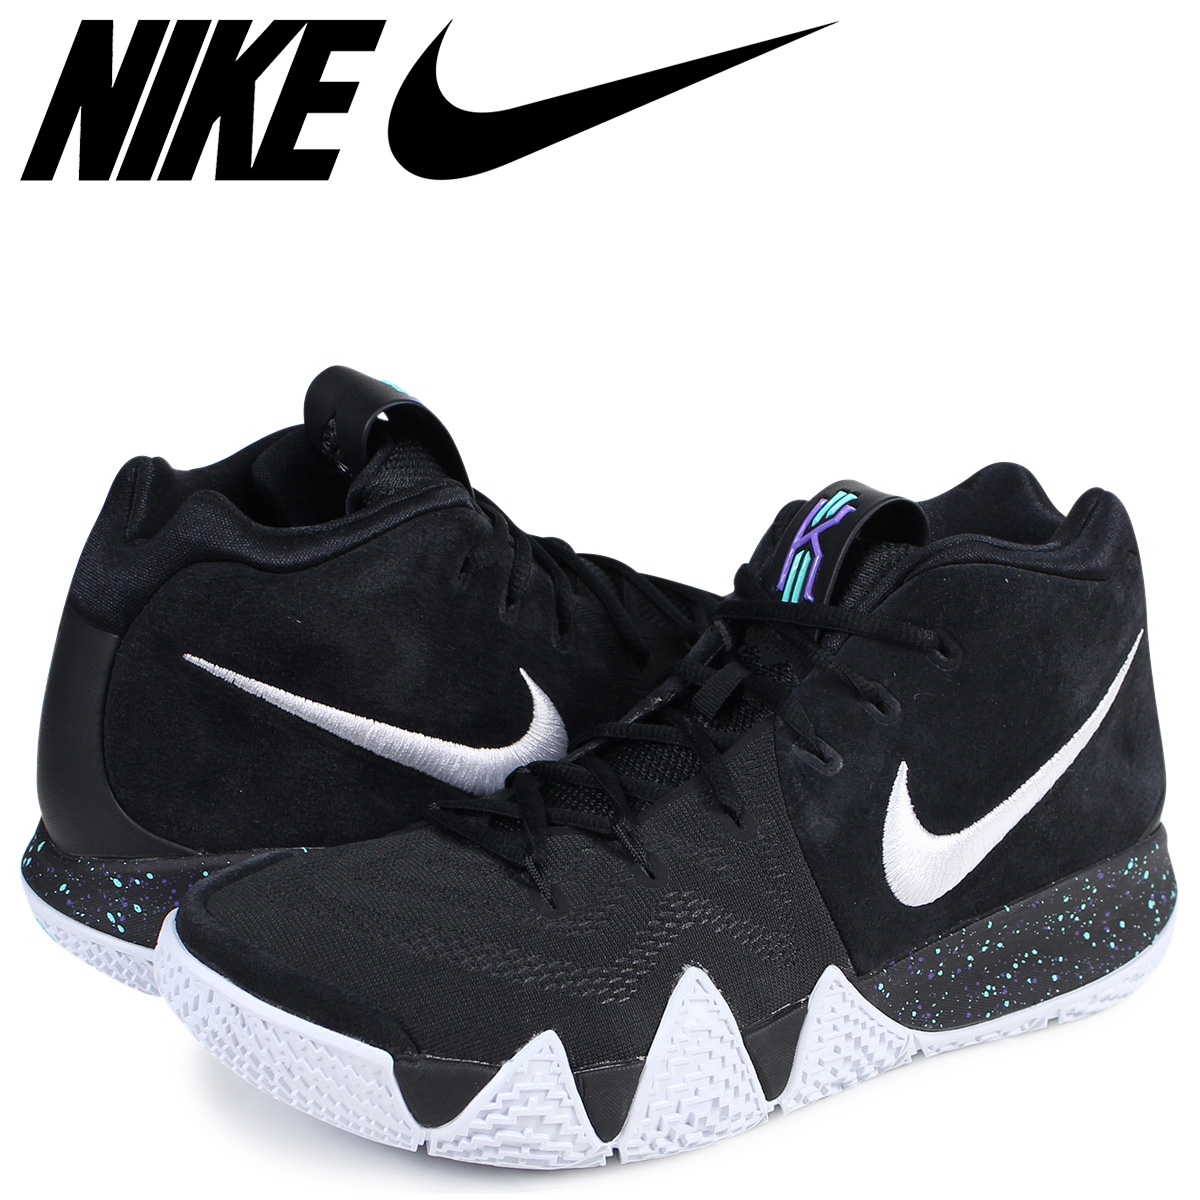 nike shoes ep meaning insurance 862020